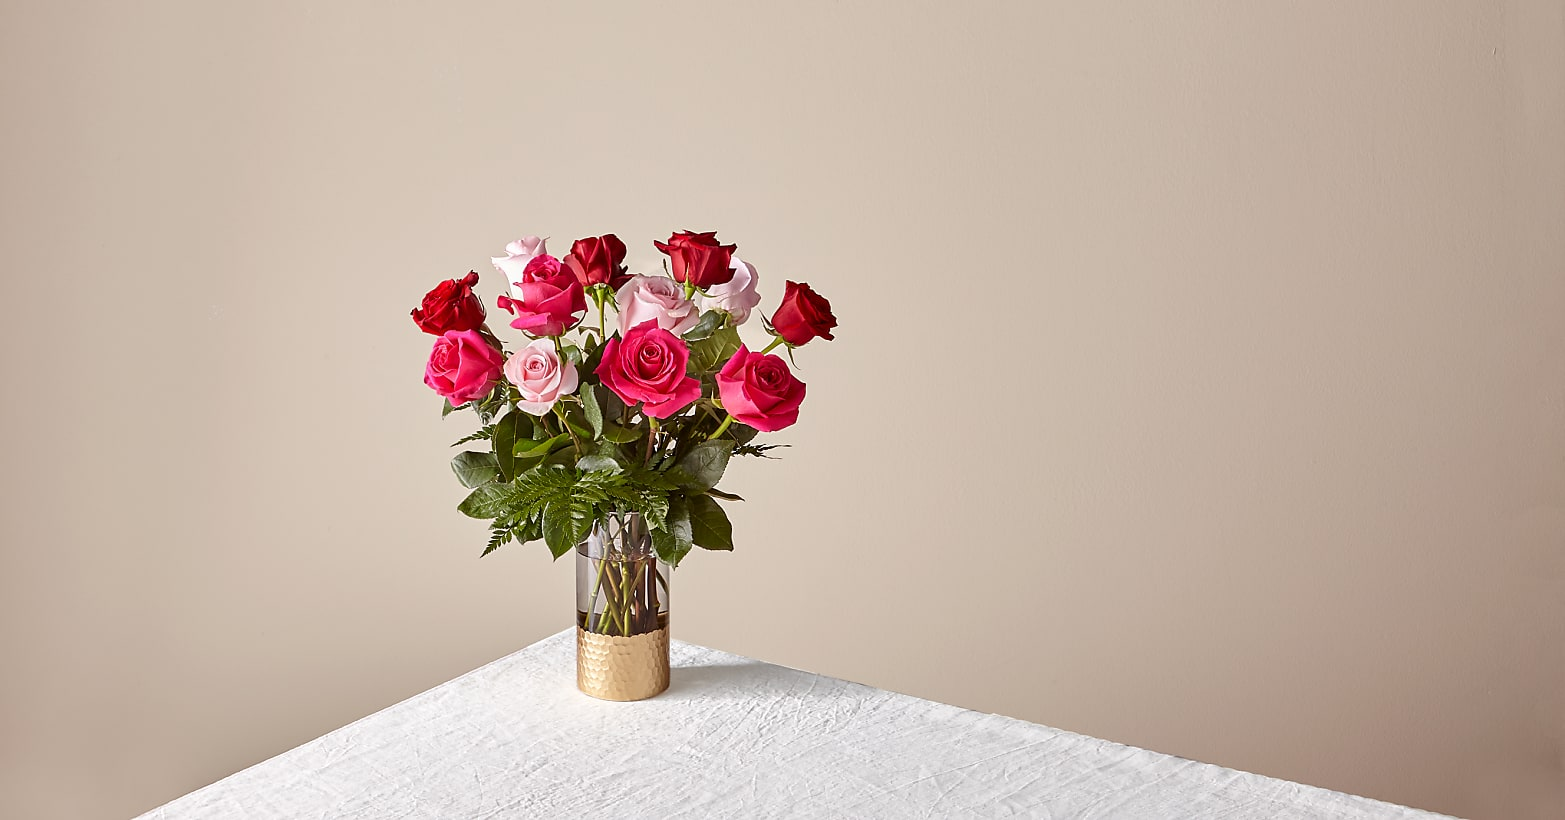 Rose Colored Love Bouquet - Image 1 Of 7